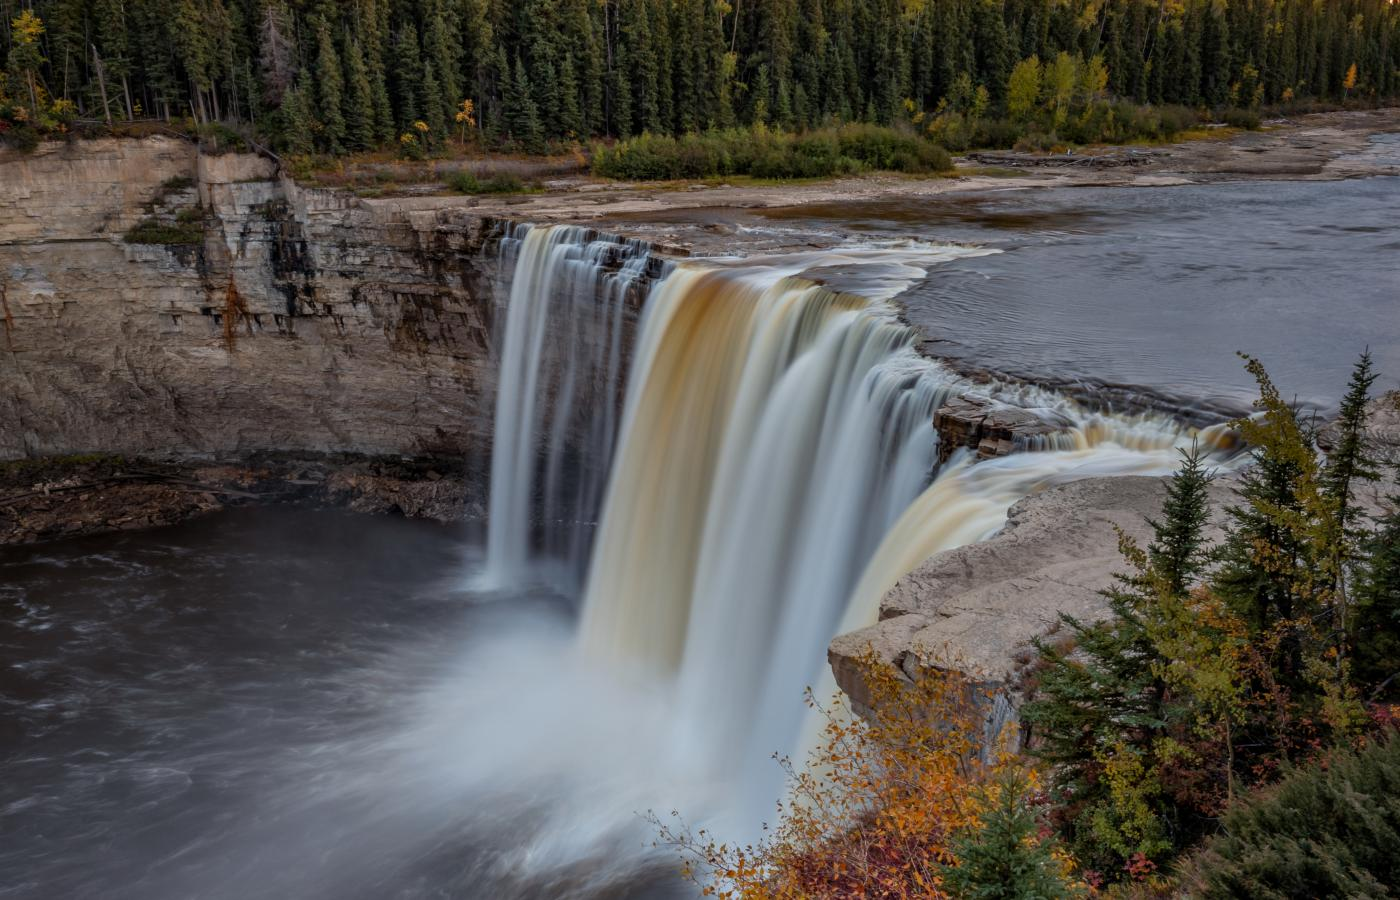 water cascades down Alexandra Waterfalls in the Northwest Territories